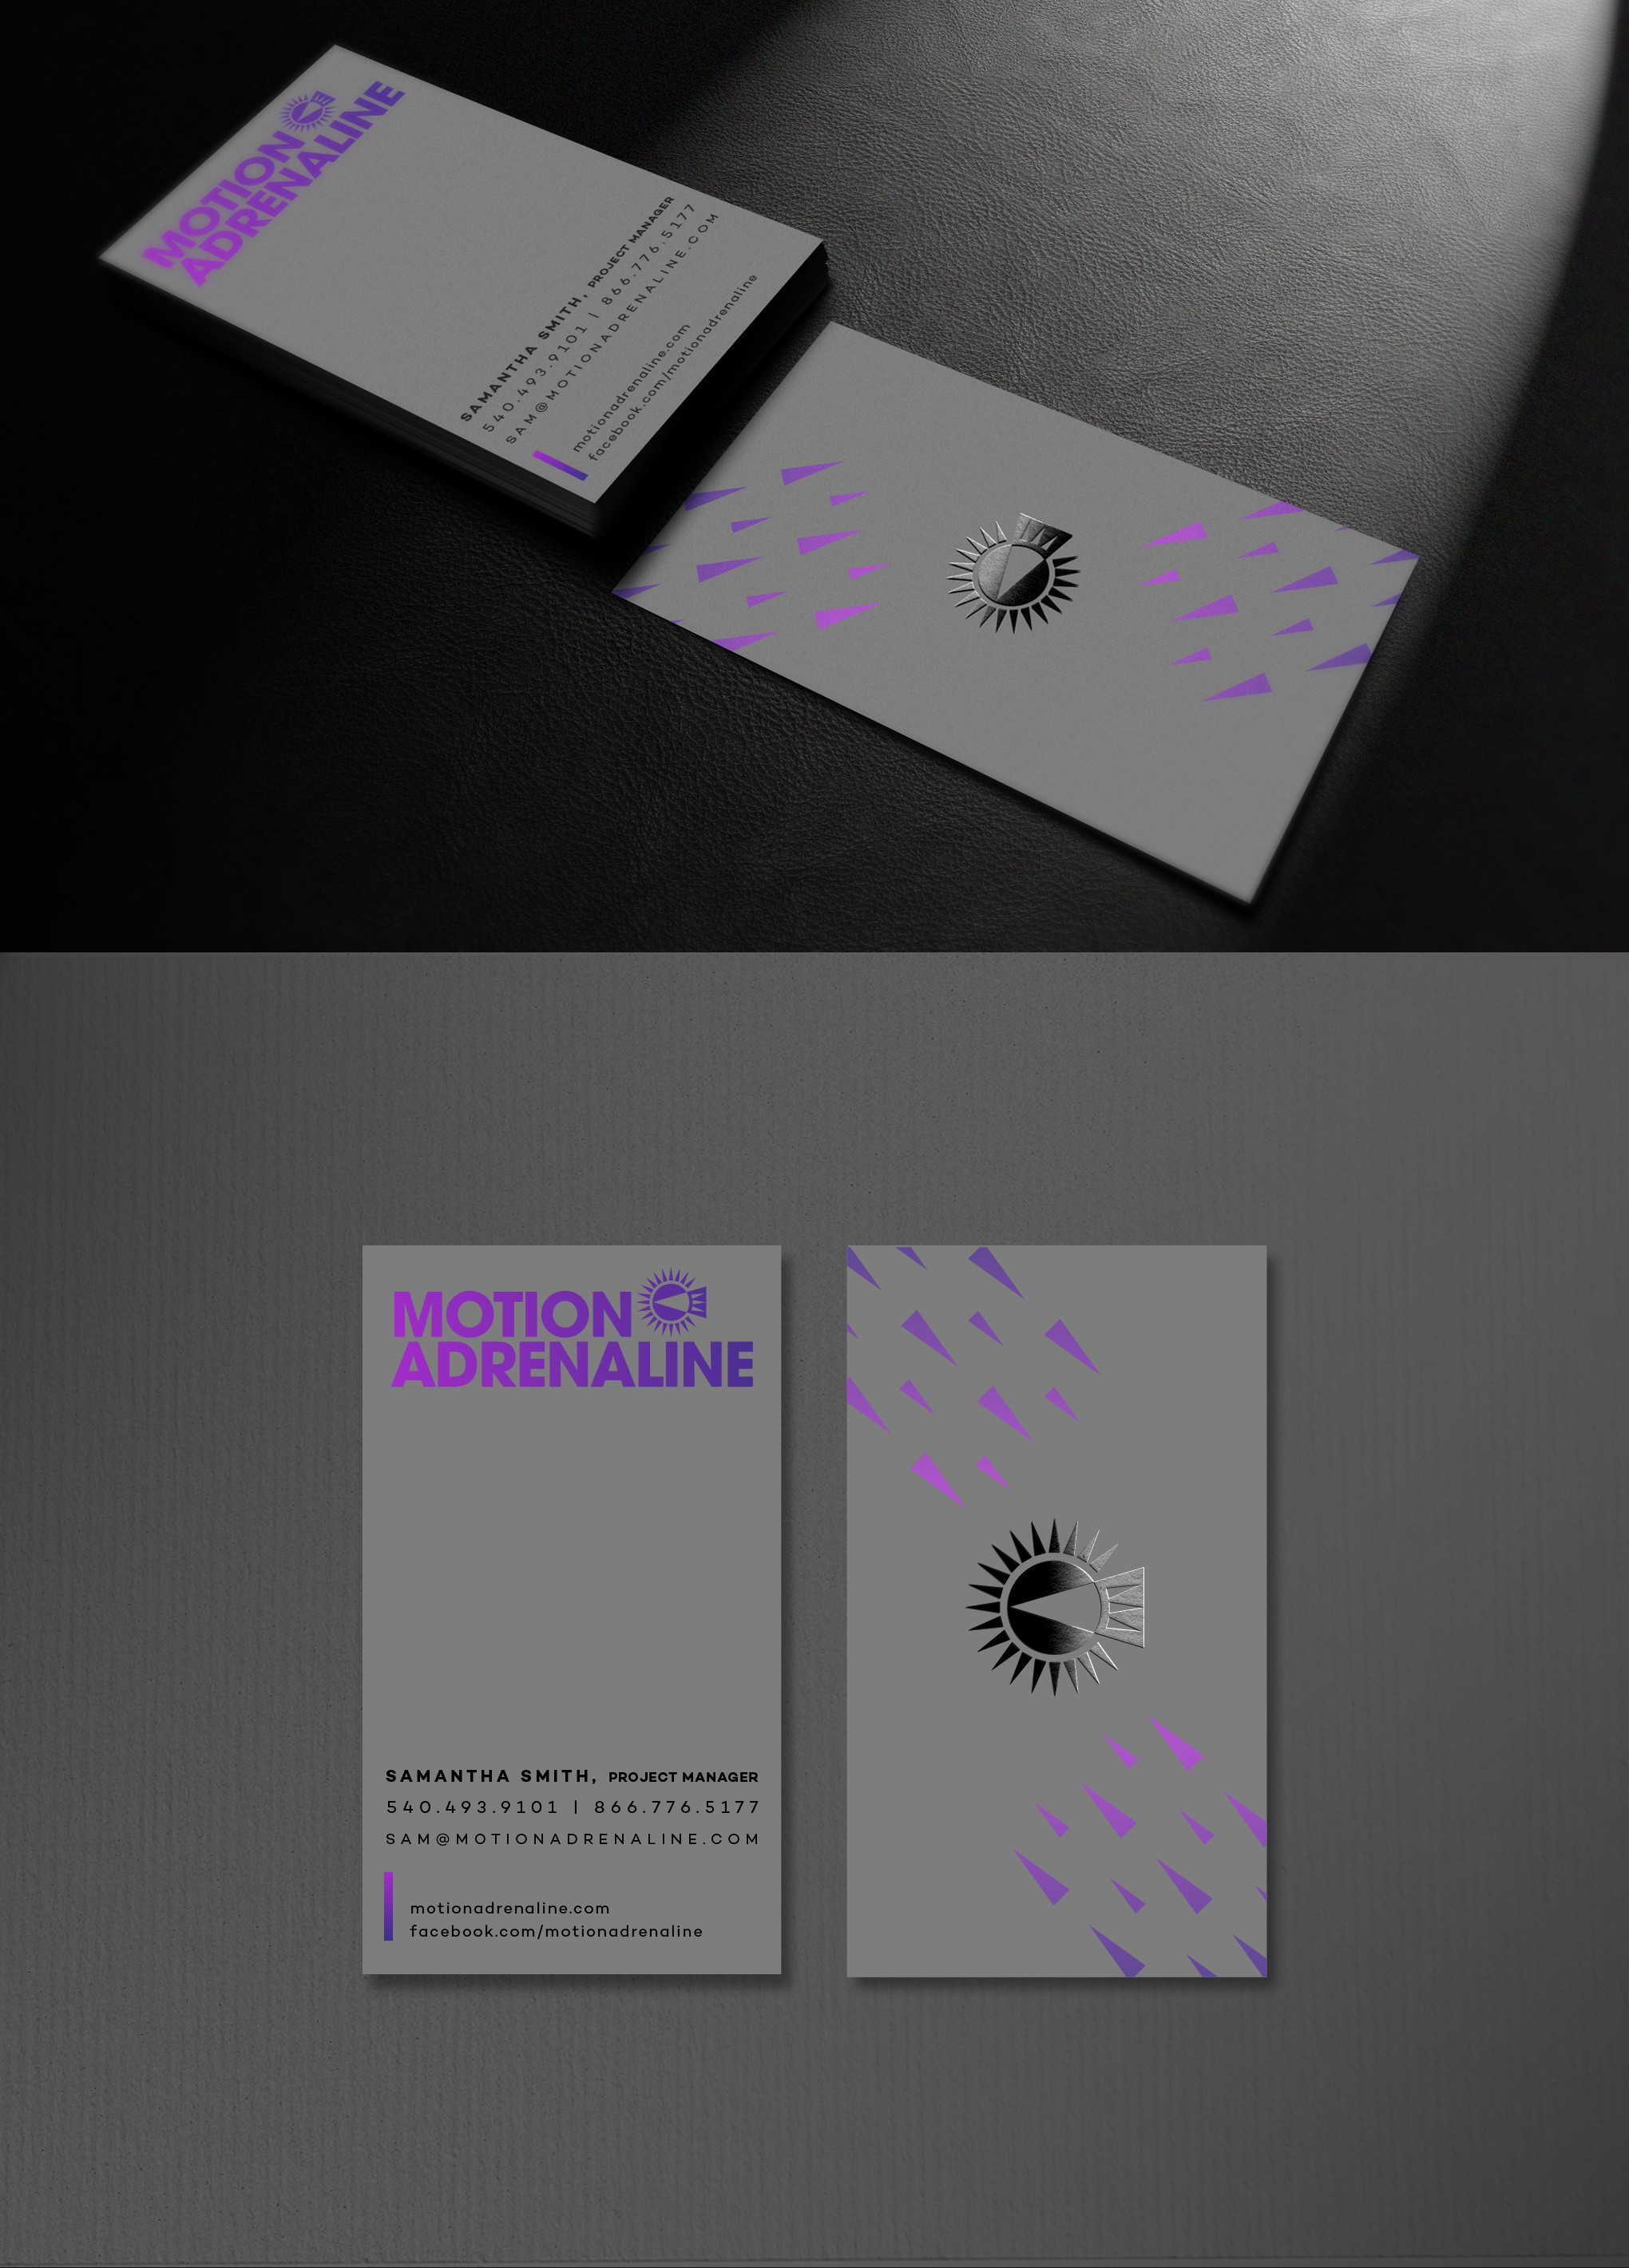 New business card design.